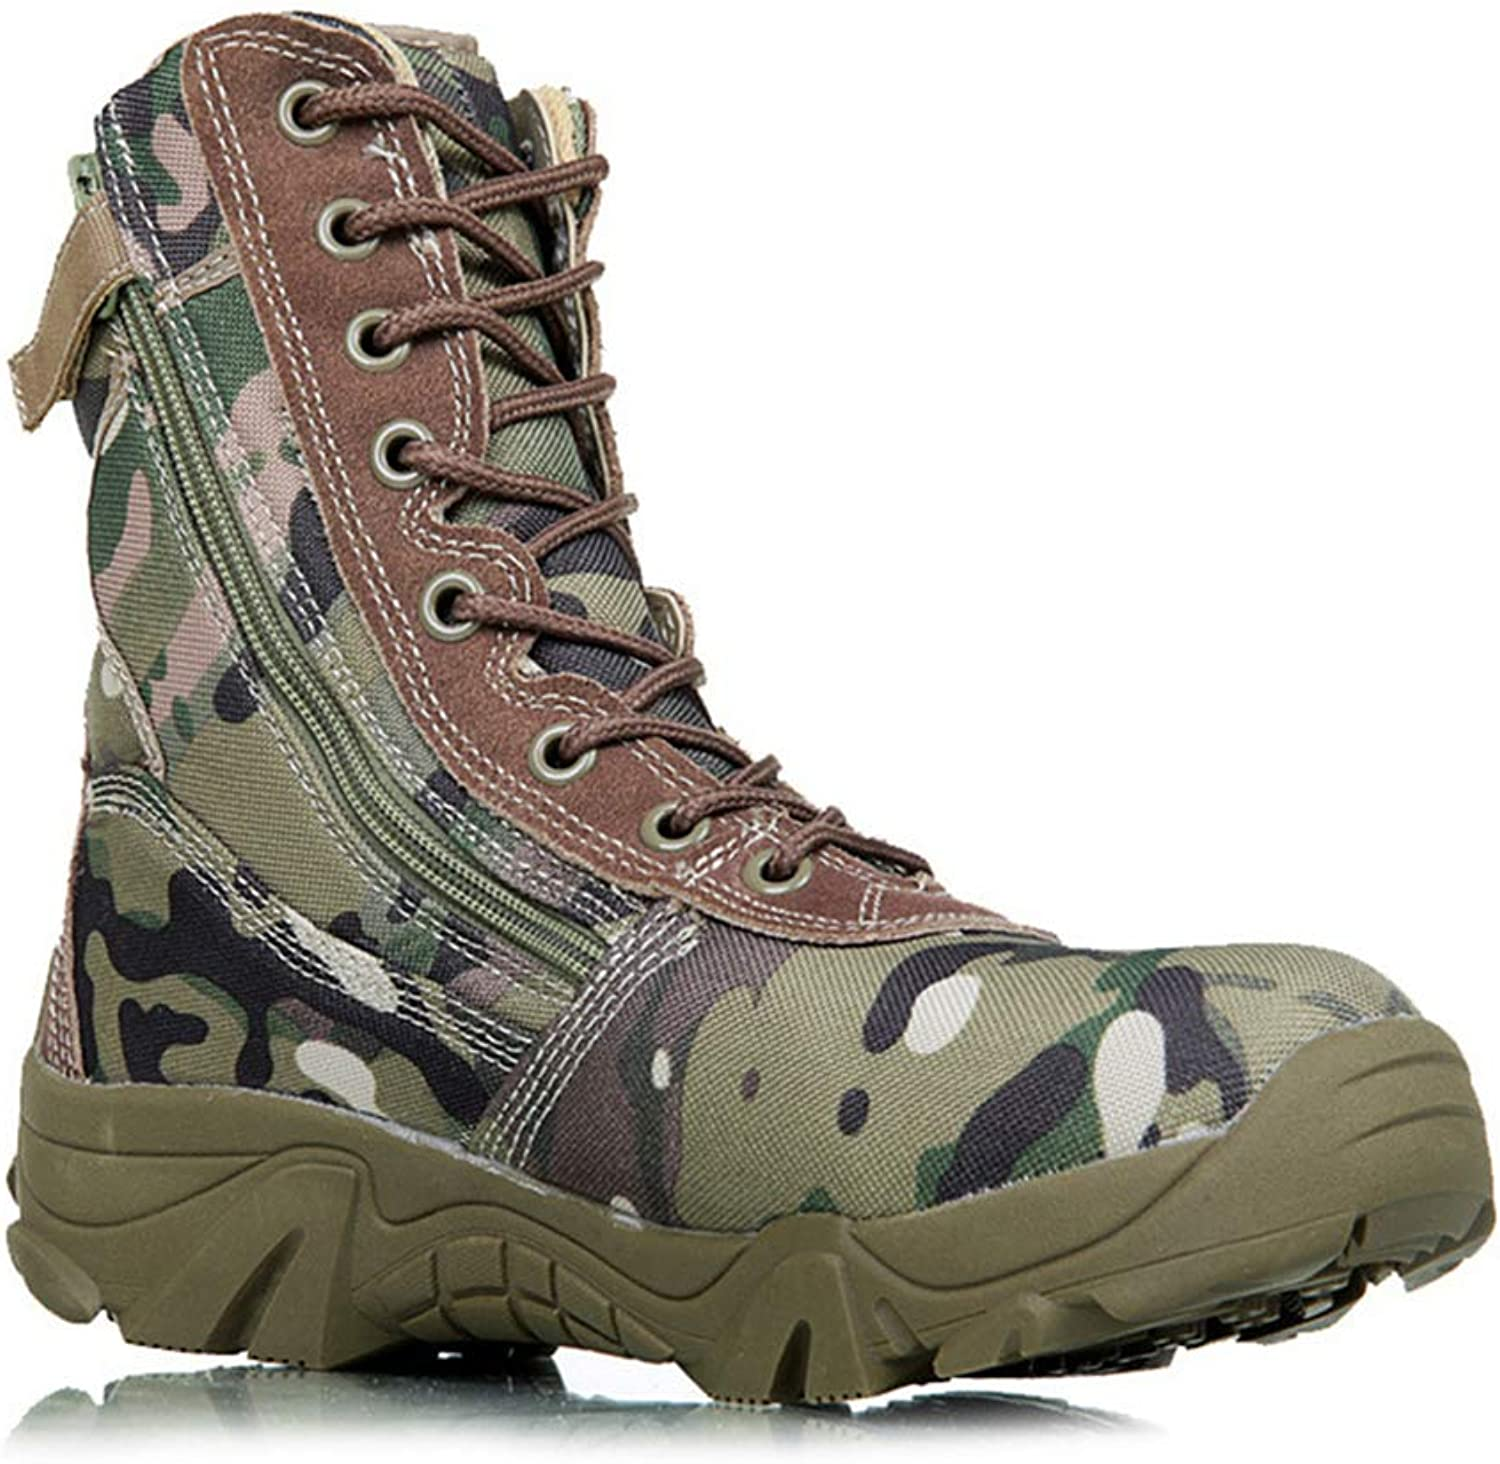 Hiking Sneakers for Men Military Tactical Waterproof Camping Trekking Boots